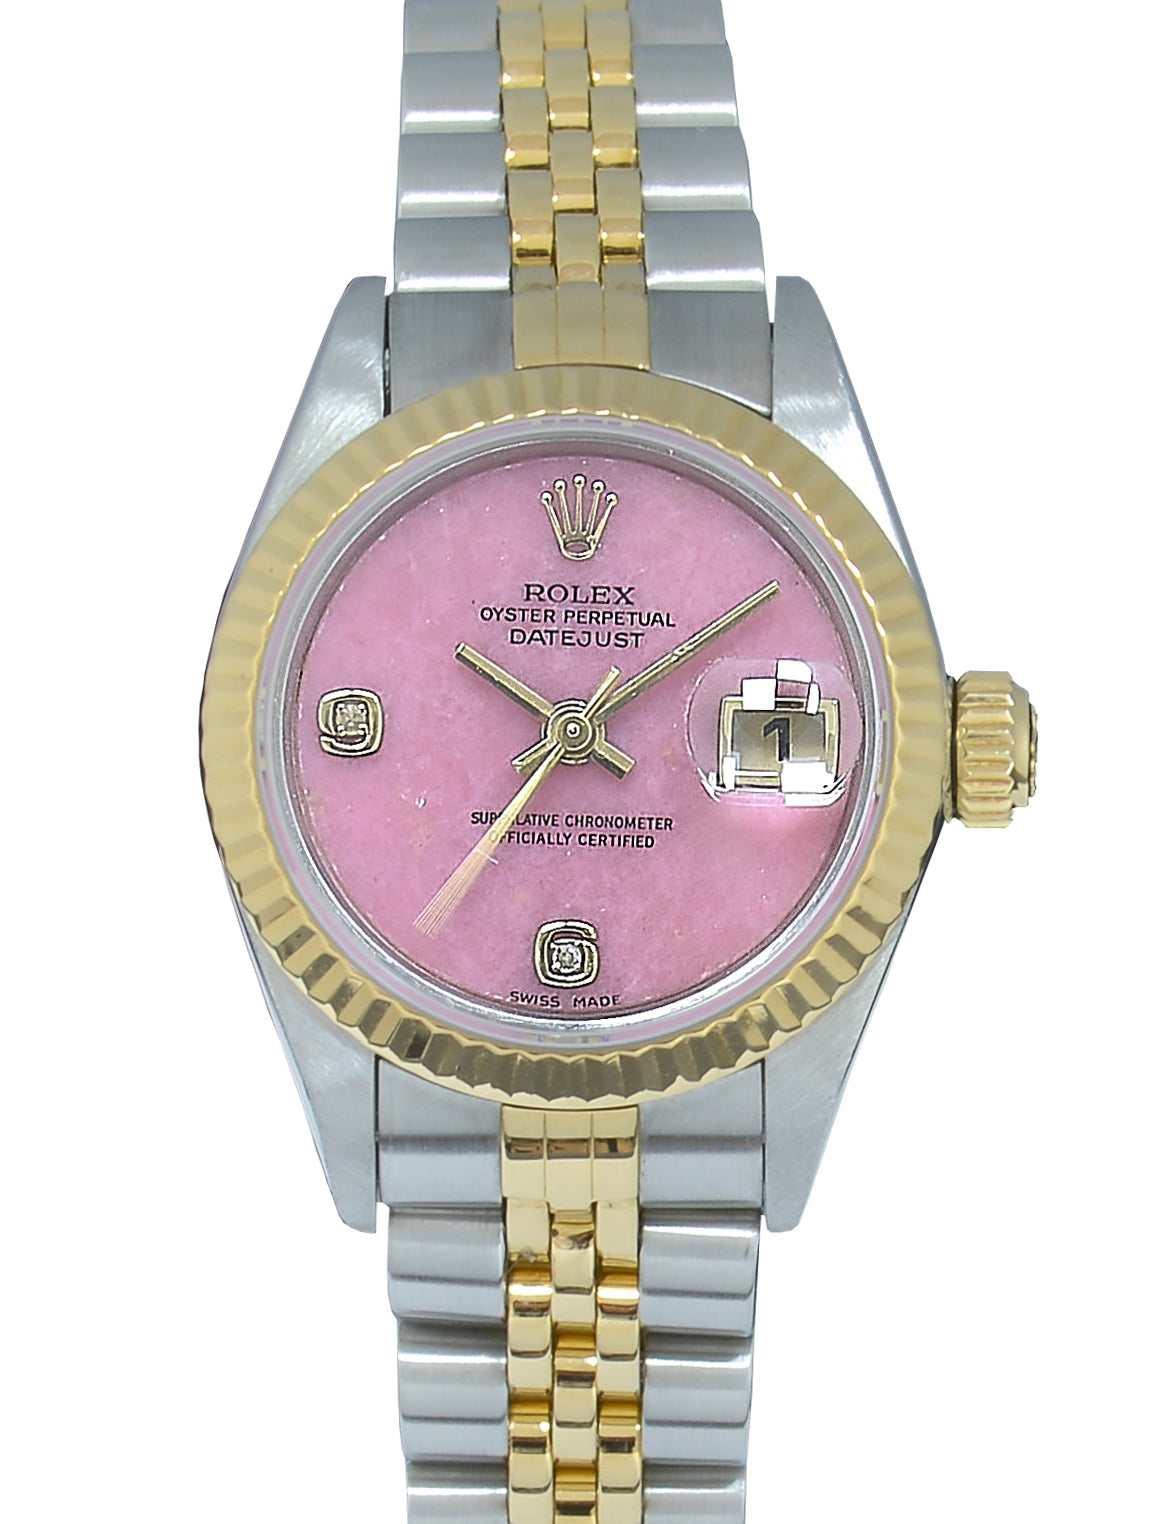 Rolex Datejust Bimetal with Coral Factory-Set Diamond Dial, Papers